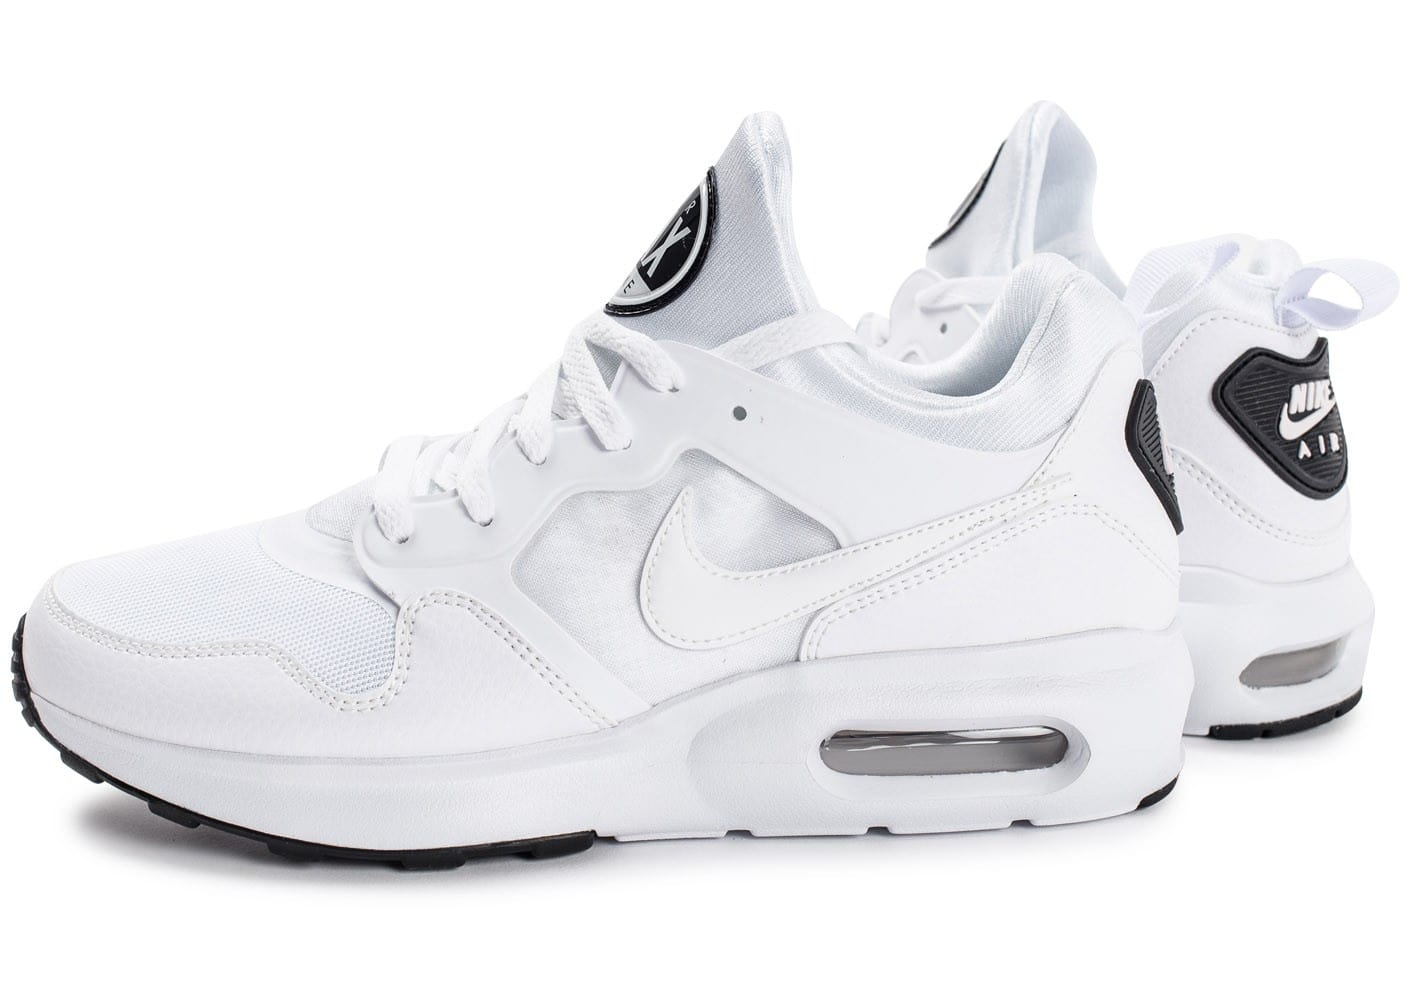 Max Chaussures Air Homme Prime Running Nike uK1lFJc5T3